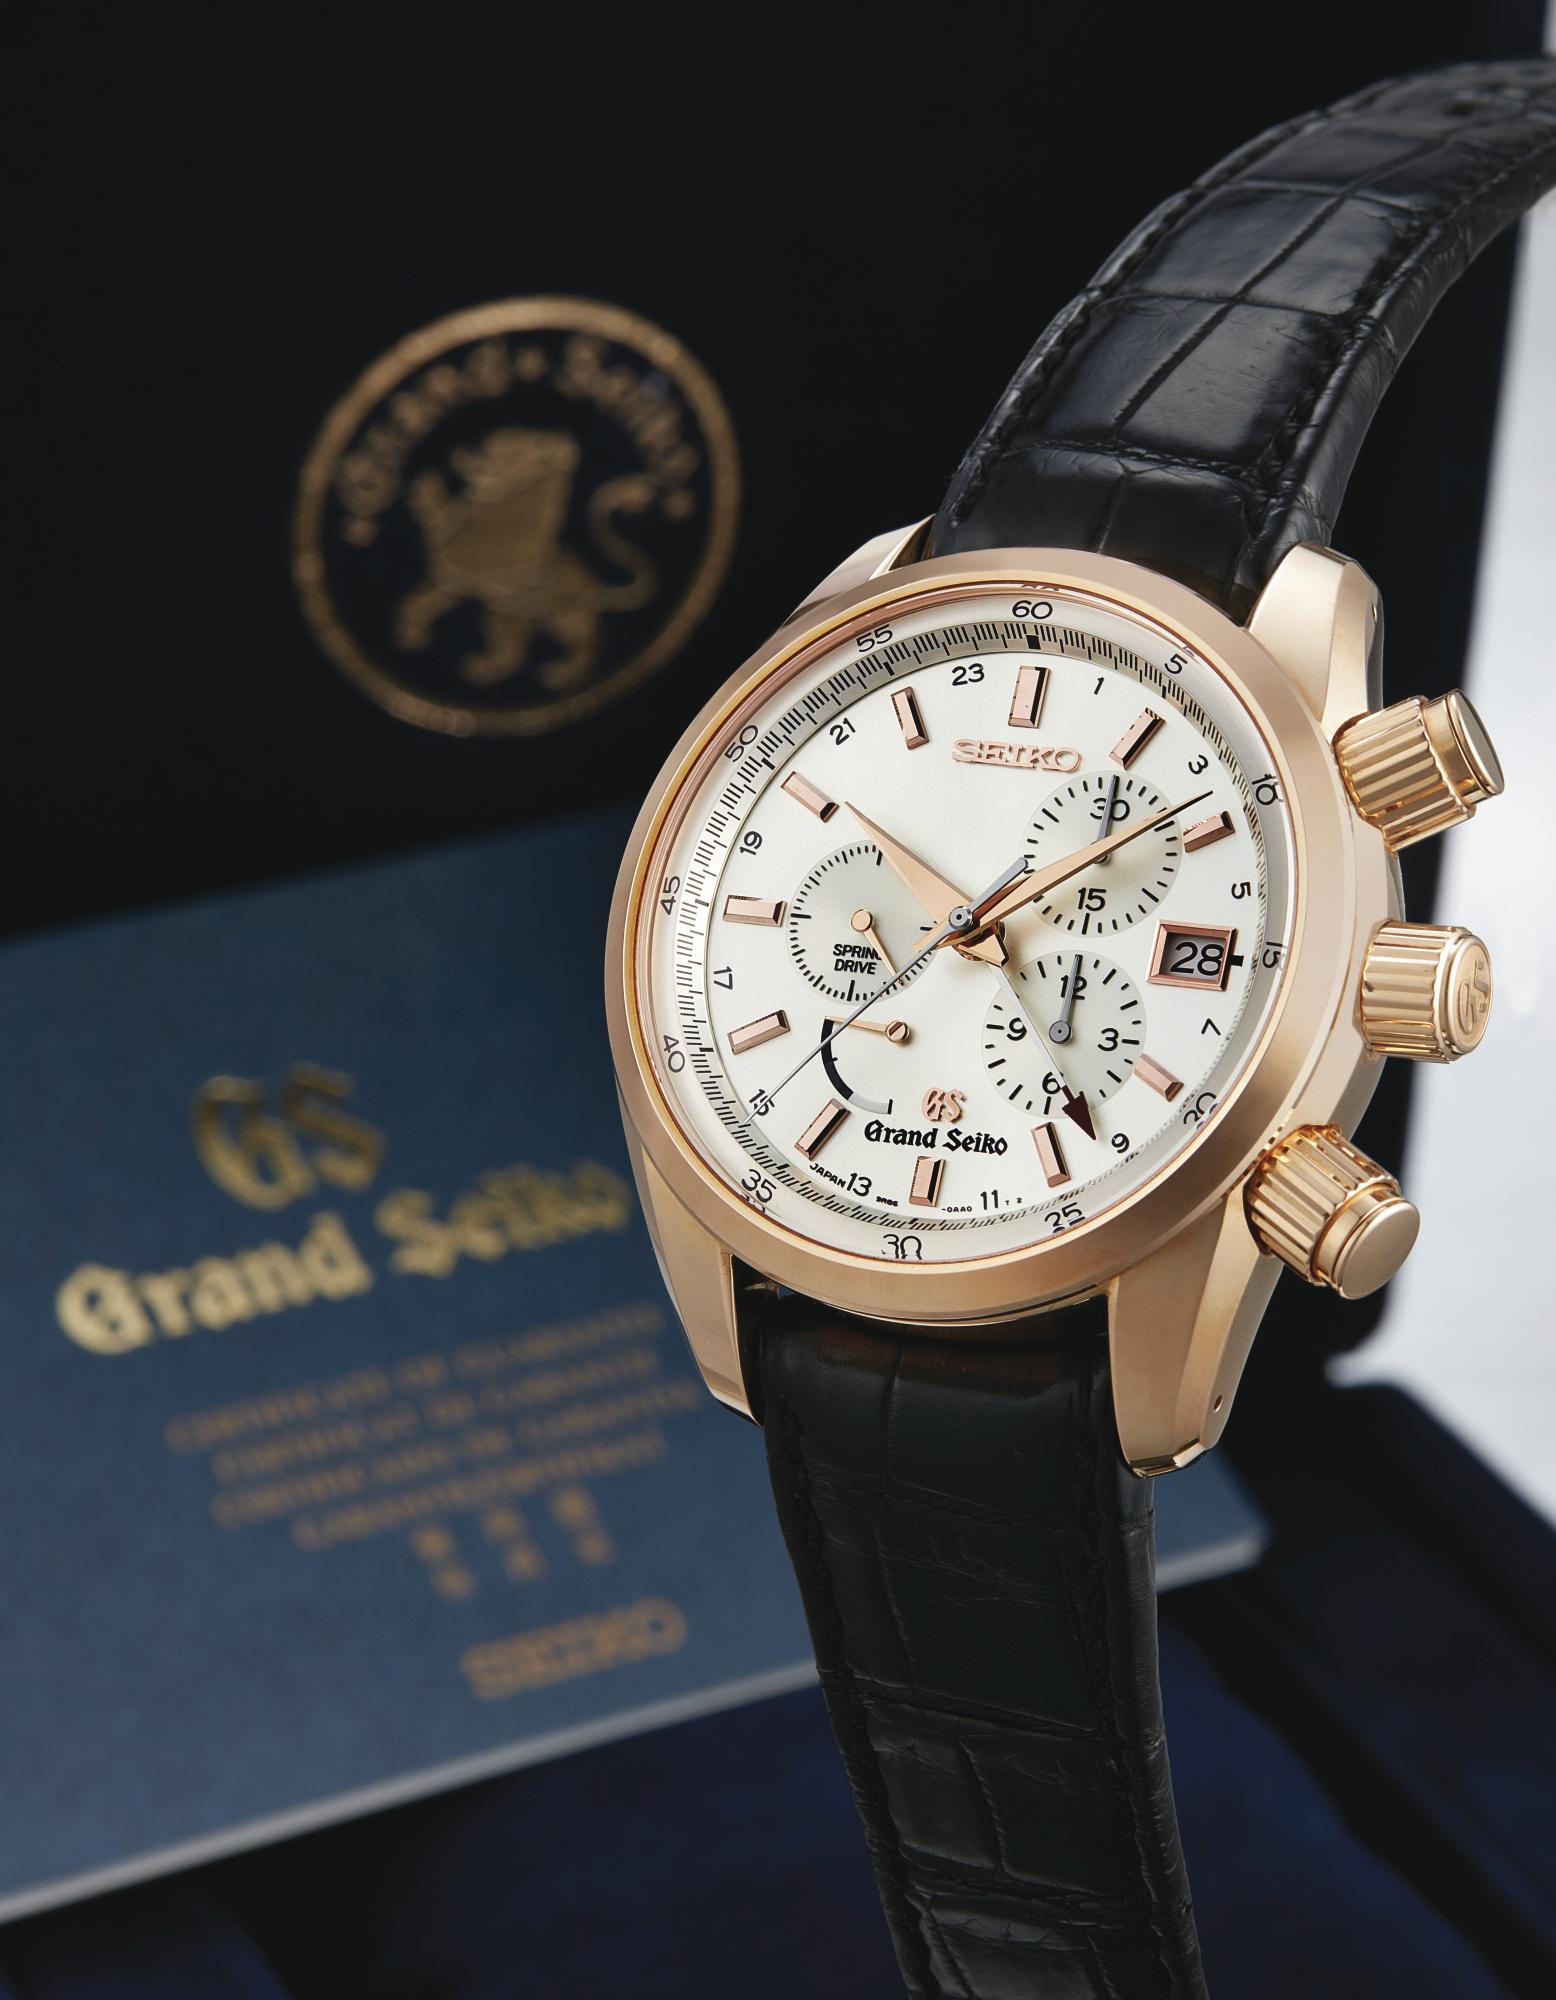 Seiko - AN UNIQUE PINK GOLD AUTOMATIC DUAL TIME ZONE CHRONOGRAPH WRISTWATCH  WITH DATE AND POWER RESERVE INDICATION GRAND SEIKO SPRING DRIVE CHRONOGRAPH  ...